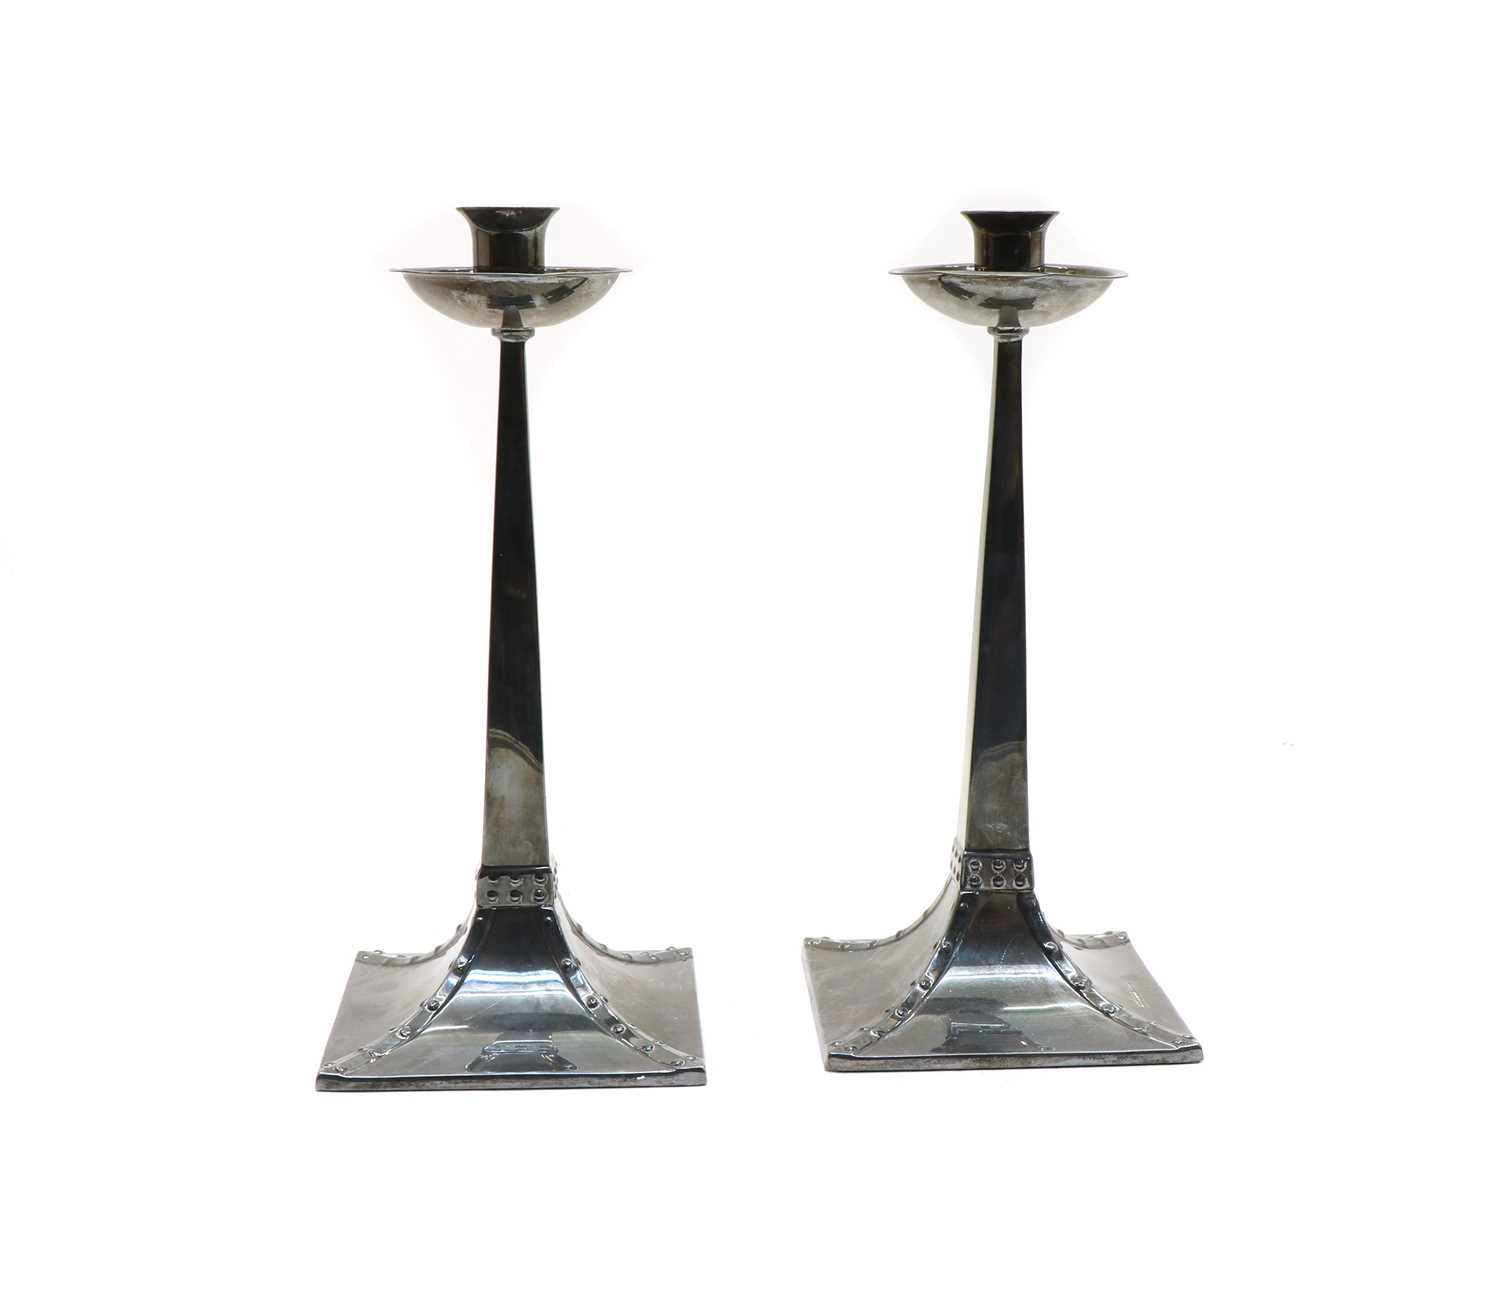 Lot 78 - A pair of Arts and Crafts-style silver candlesticks